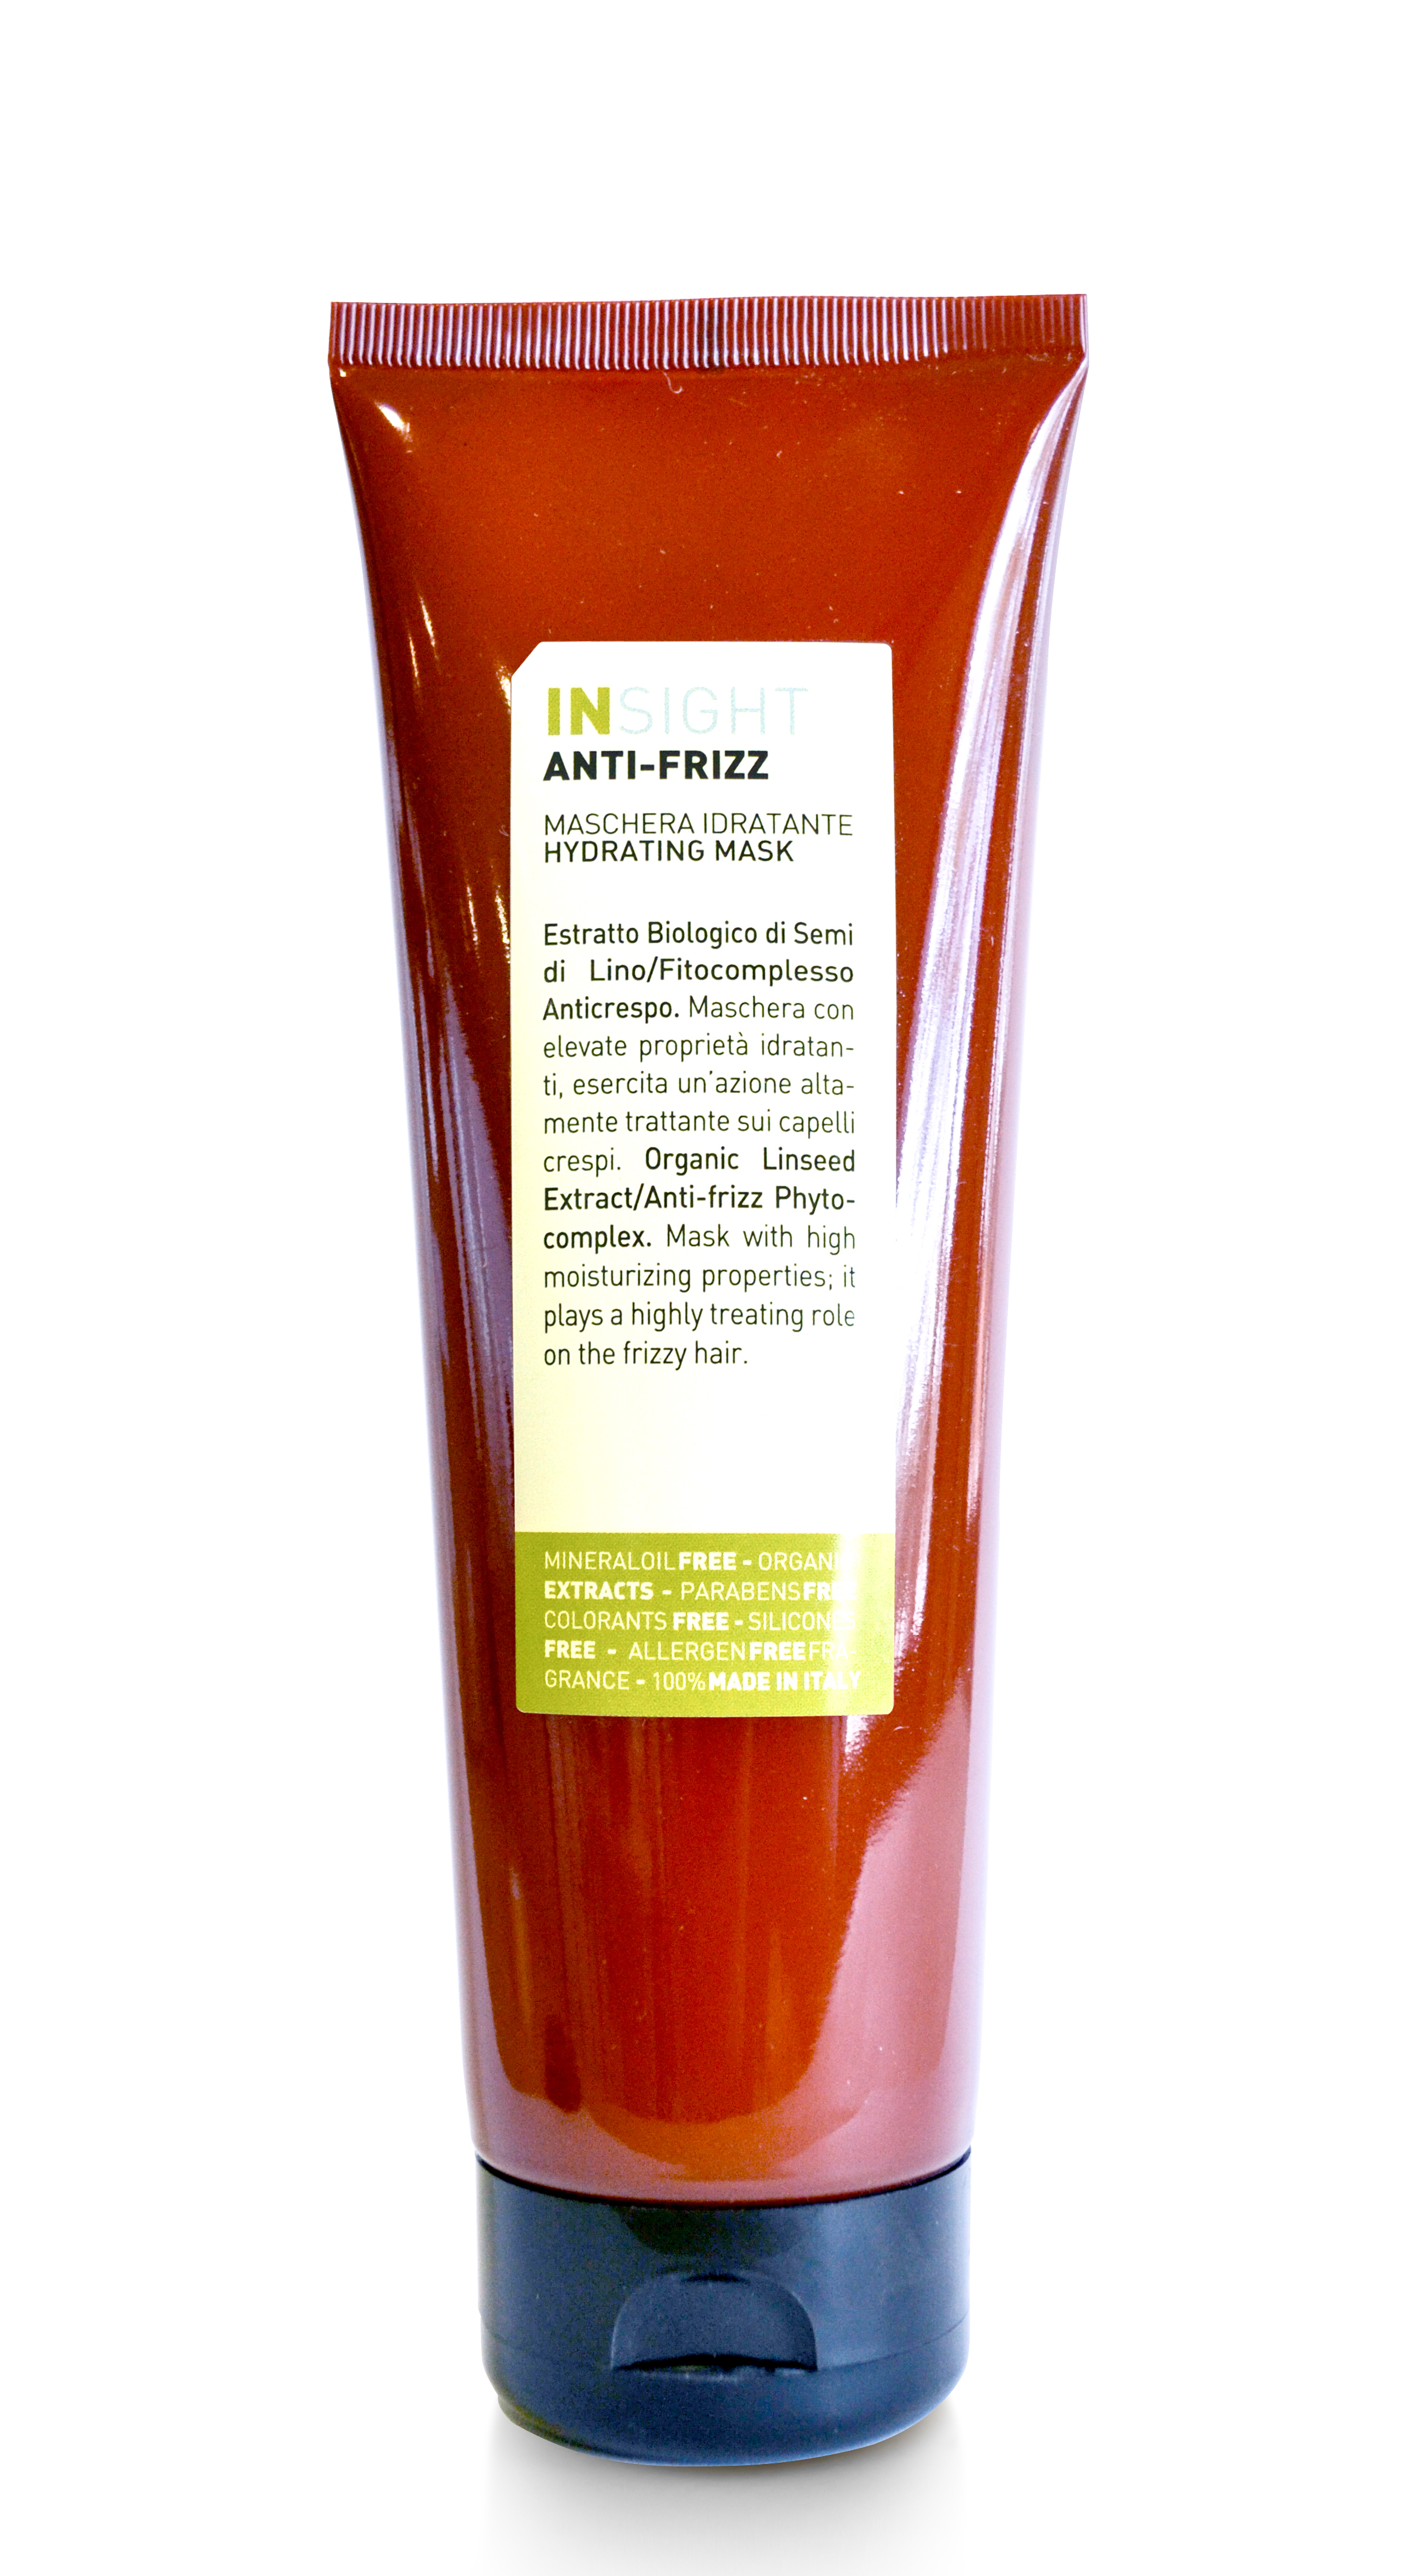 ANTI-FRIZZ HYDRATING MASK